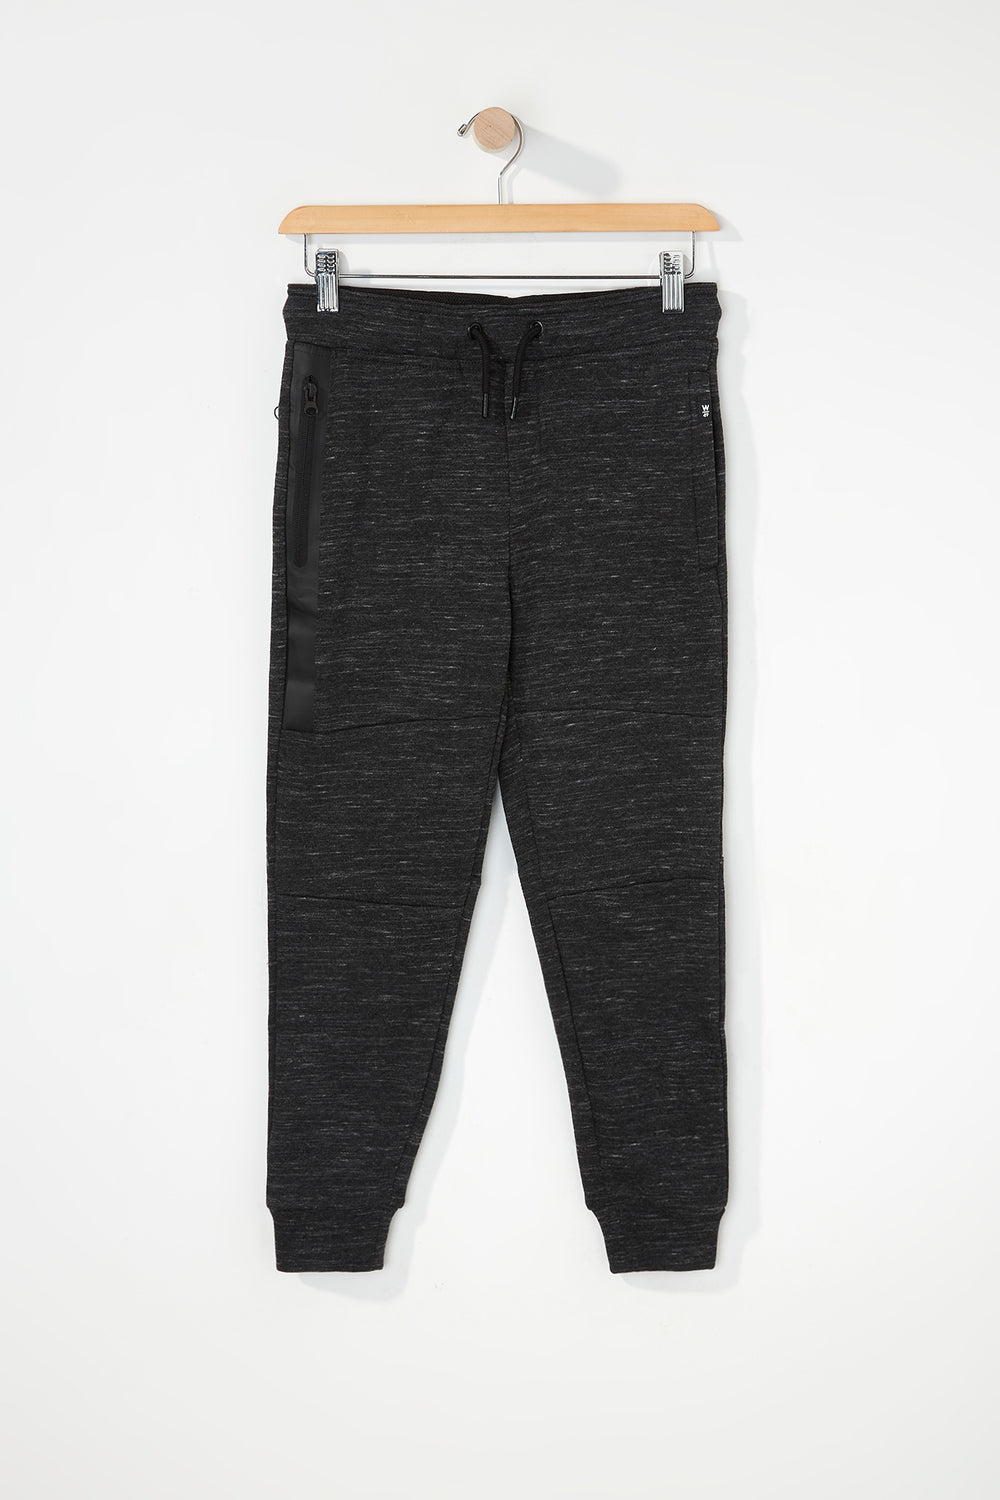 West49 Boys Zip Jogger Charcoal